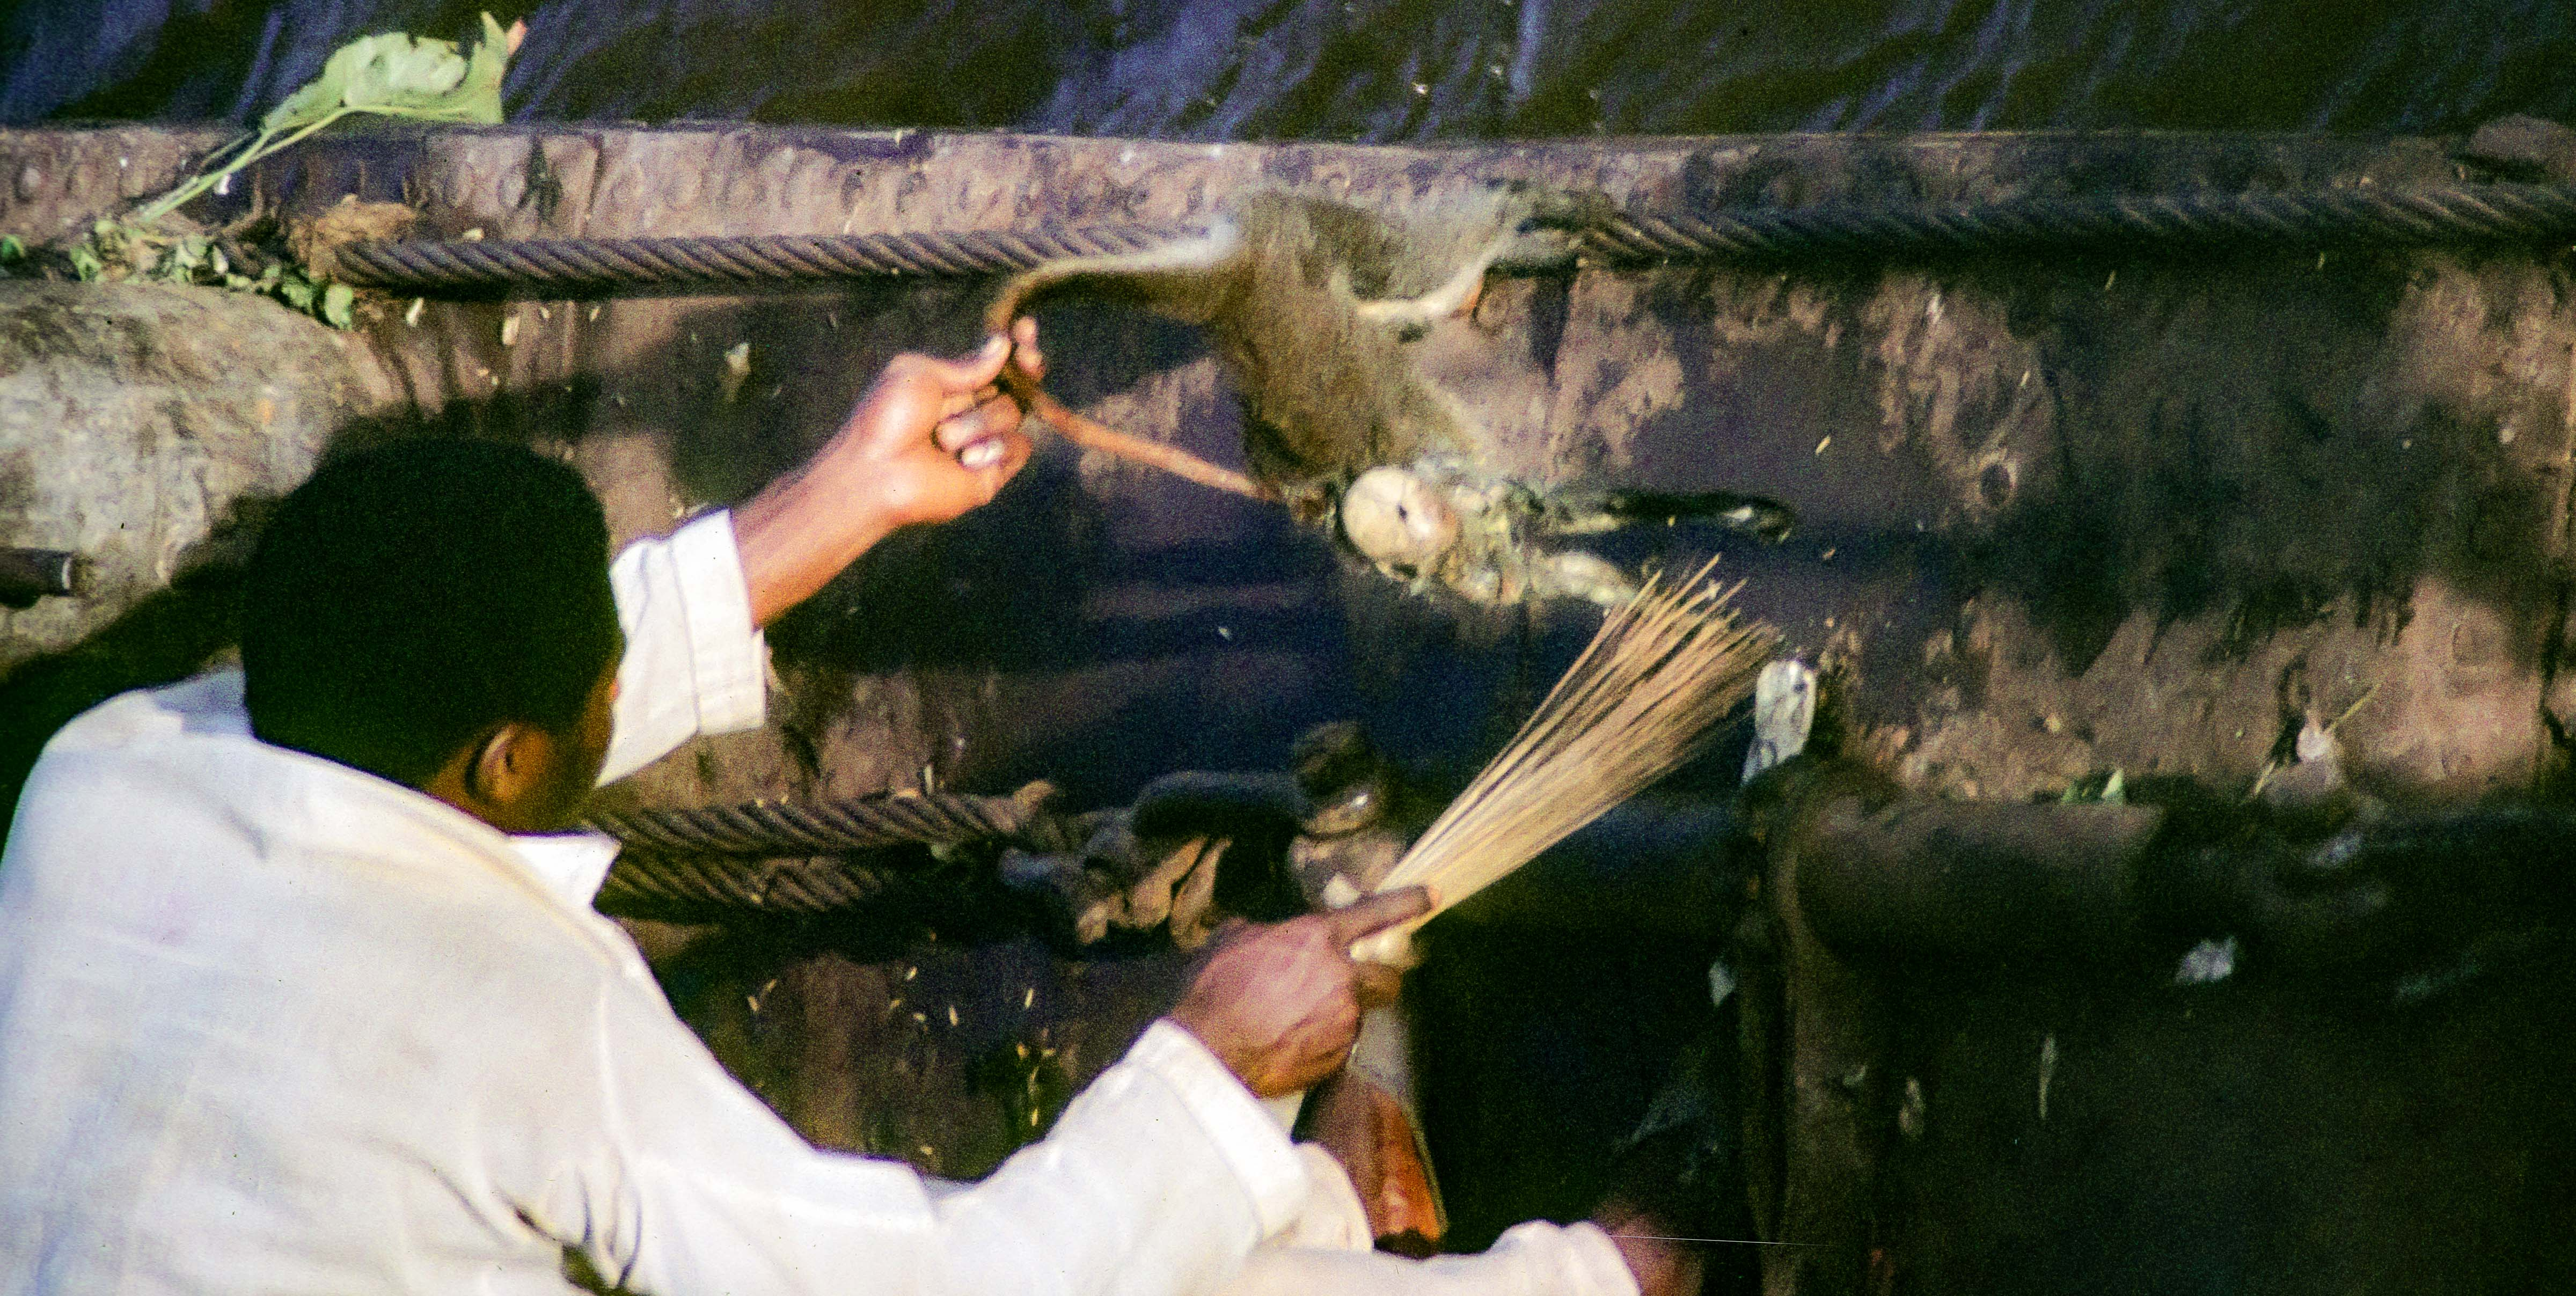 Congo Zaire, Sweeping Maggots off a Monkey (to Eat), 1984